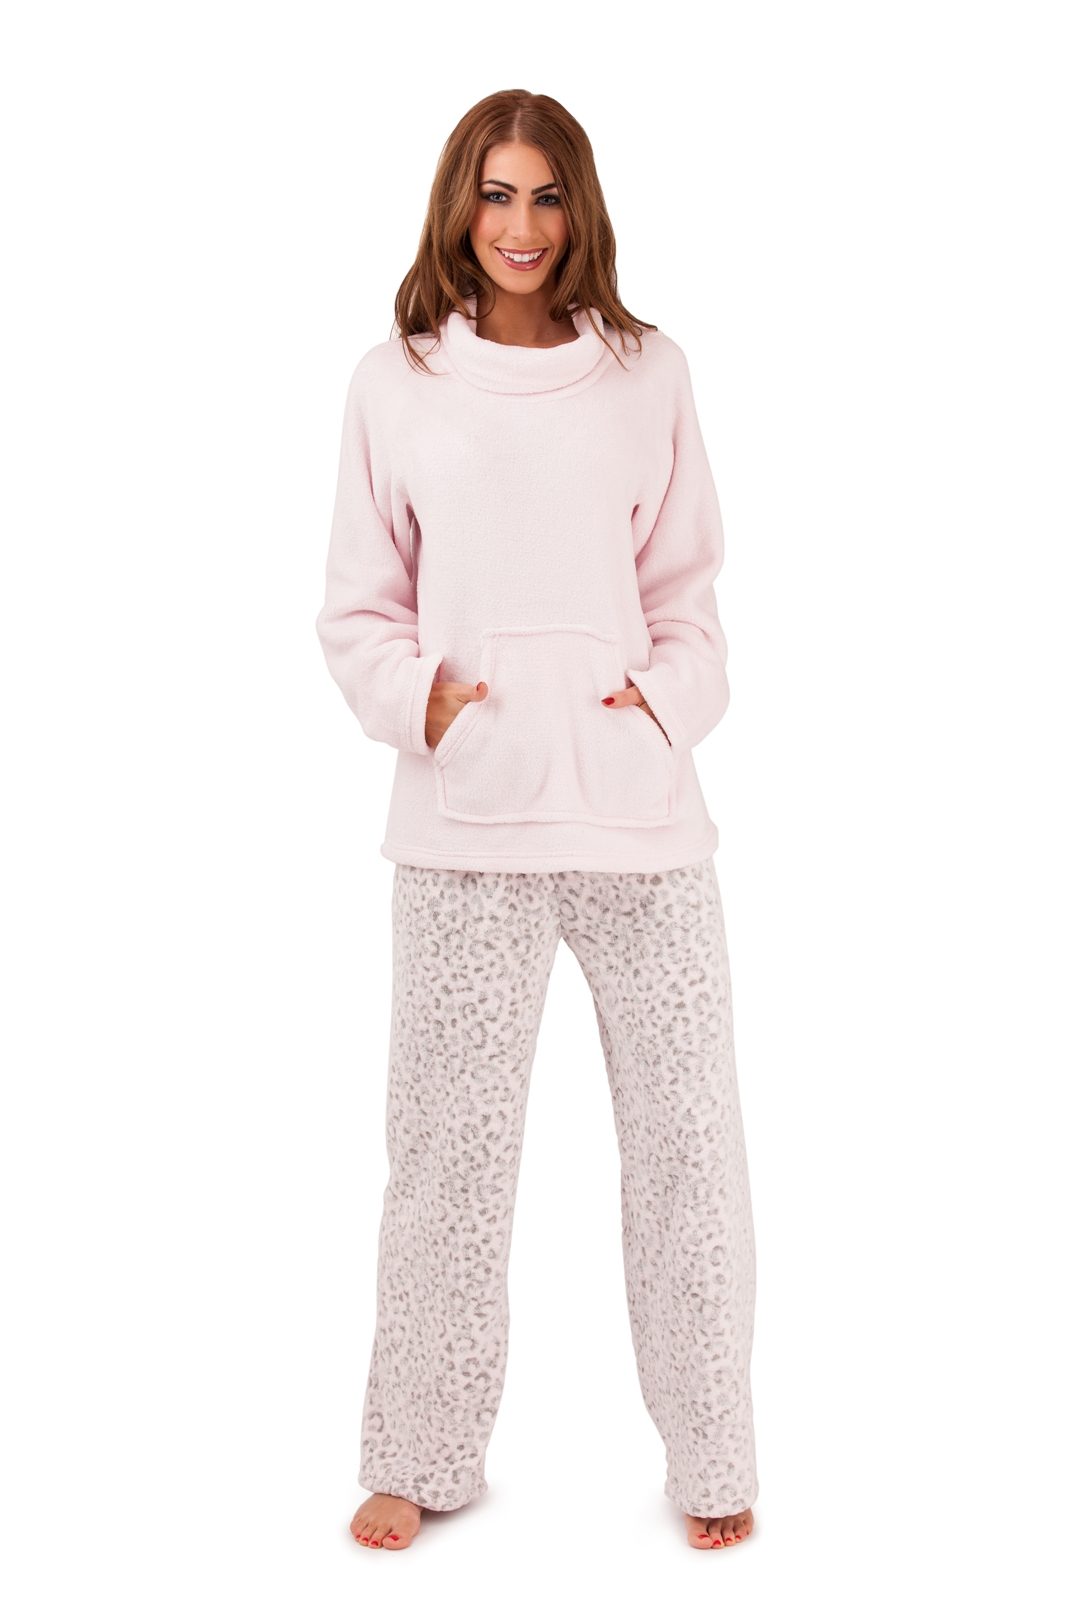 Adonna Womens White Red & Gray Leaf Fleece Pajamas Floral Holly Sleep Set. Sold by The Primrose Lane. $ $ Hanes Women's Polar Fleece Dog Print Pajama Set. Sold by reformpan.gq $ $ Cozy Loungewear Women's Printed Minky Fleece Pajama Pant with Plus Sizes.